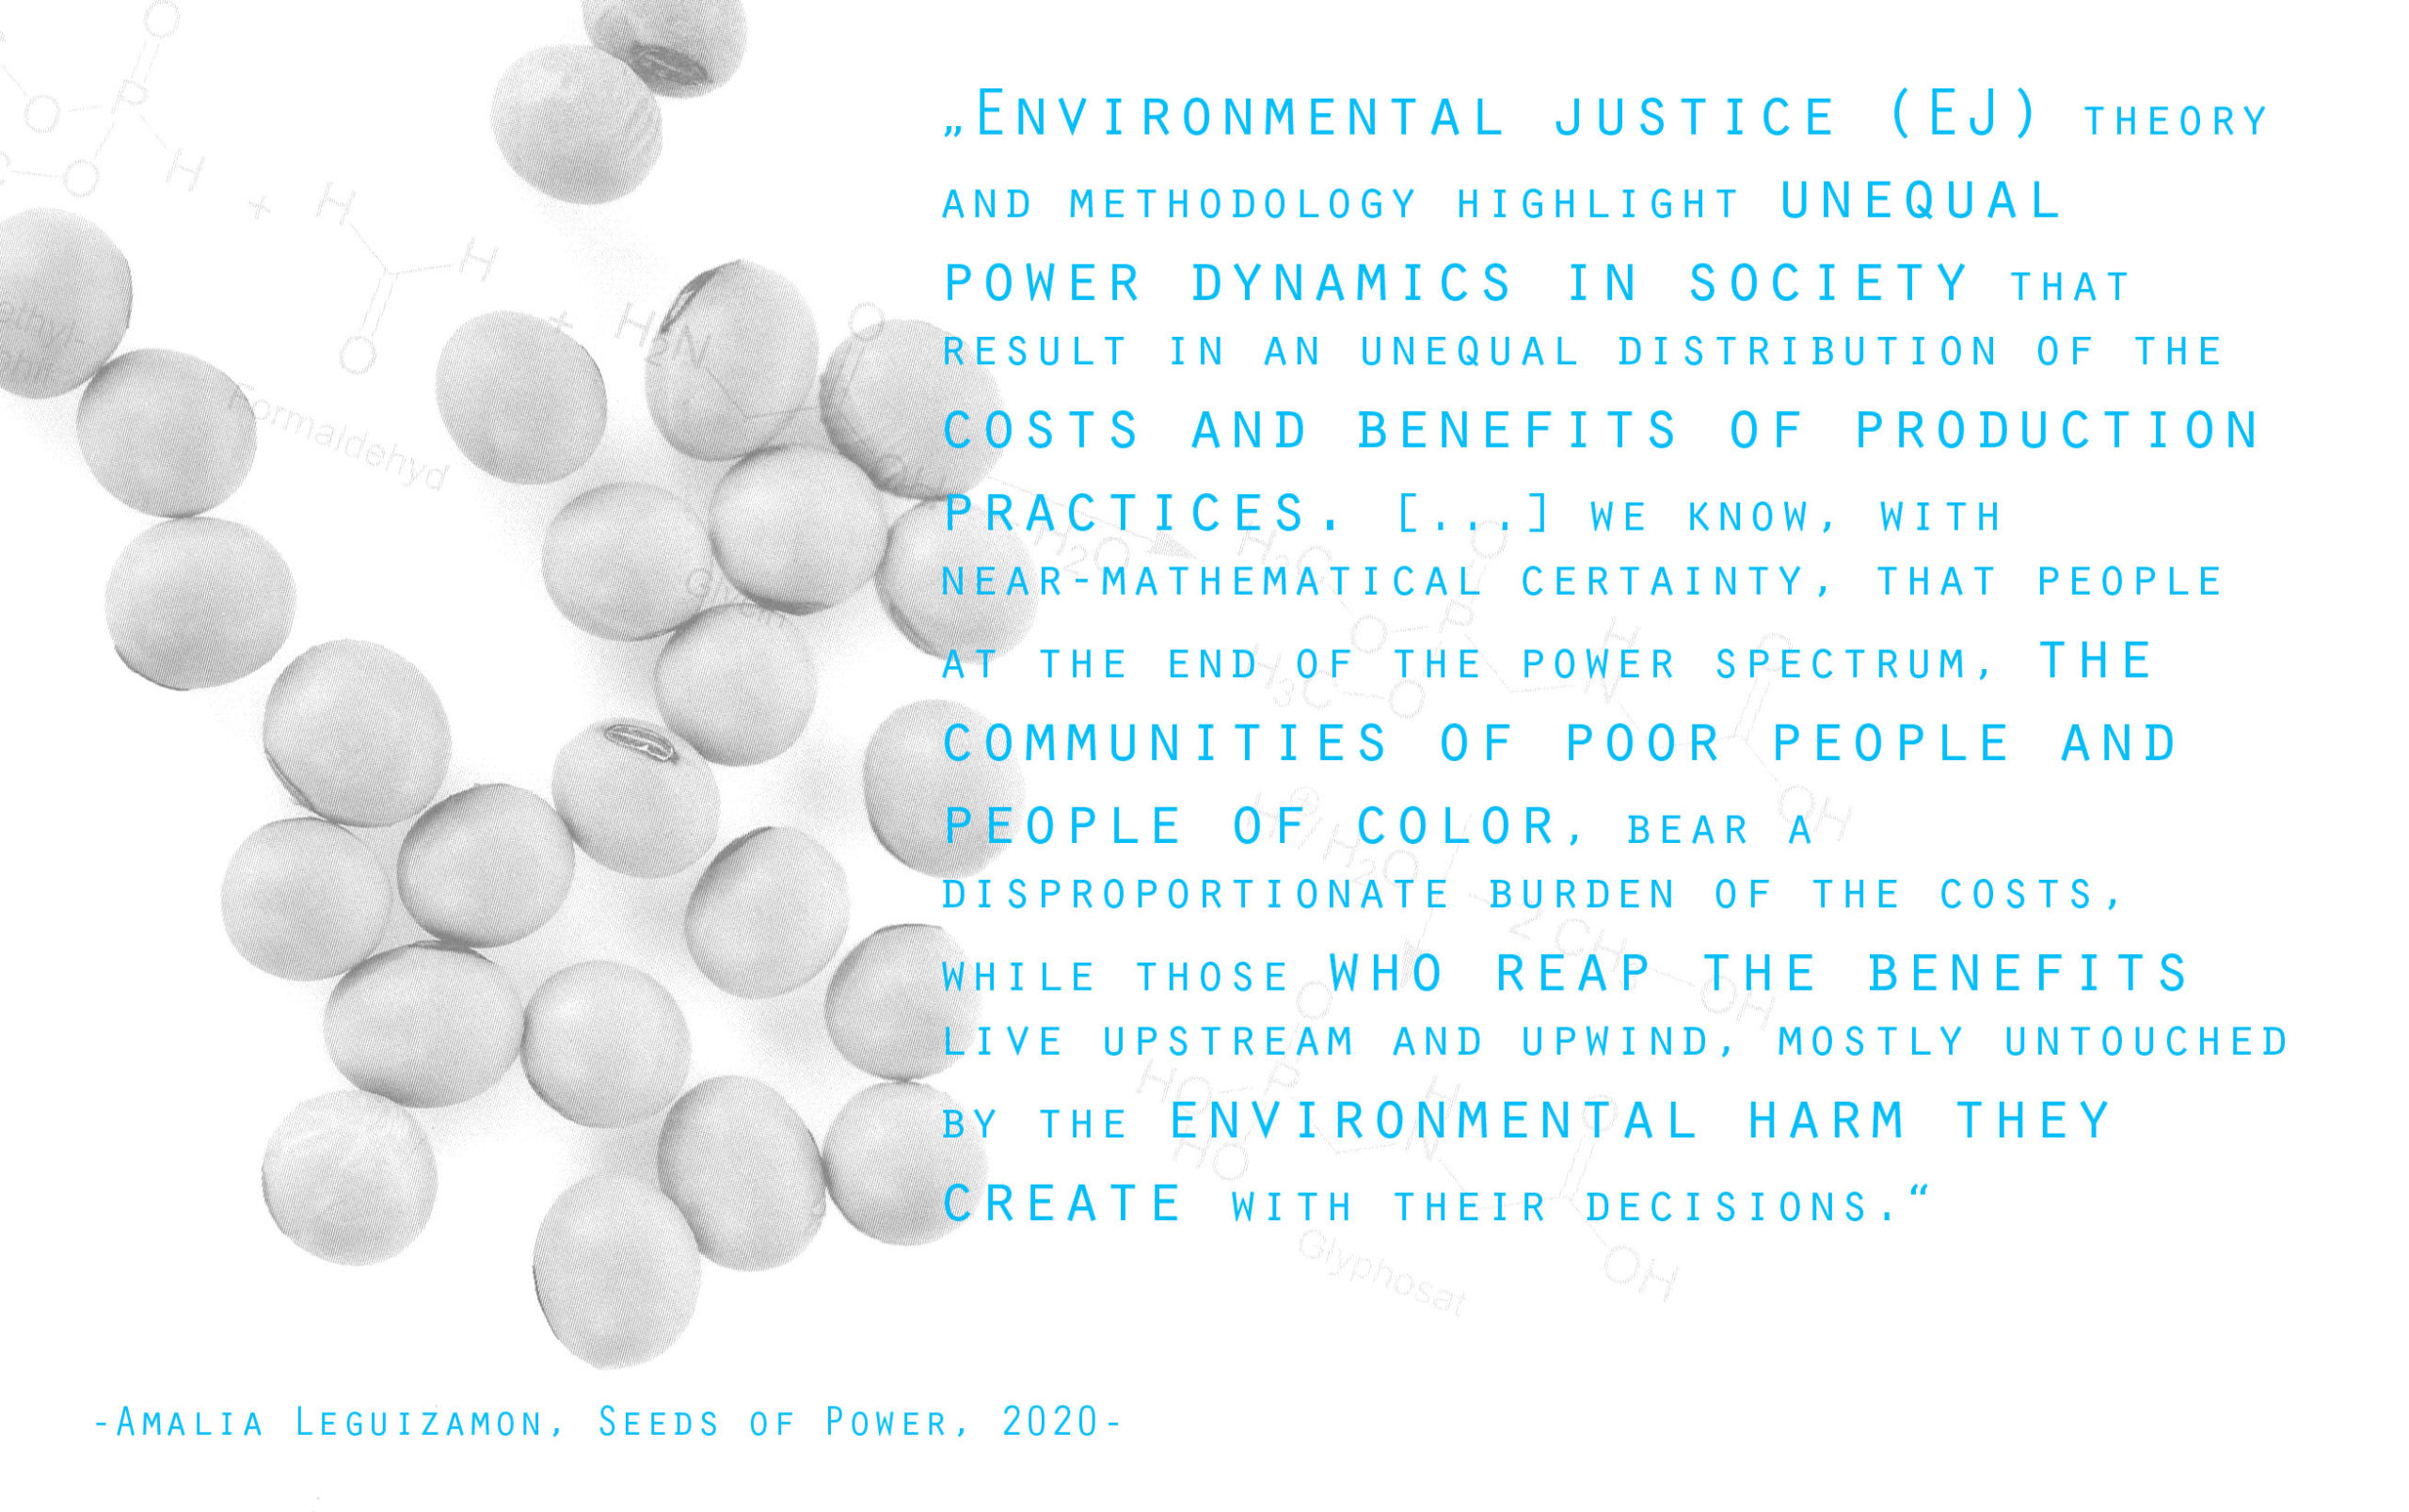 """Das stilisierte Zitat lautet: """"Environmental justice (EJ) theory and methodology highlight unequal power dynamics in society that result in an unequal distribution of the costs and benefits of production practices. […], we know with near-mathematical certainty, that people at the end of the power spectrum, the communities of poor people and people of color, bear a disproportionate burden of the costs, while those who reap the benefits live upstream and upwind, mostly untouched by the environmental harm they create with their decisions."""""""